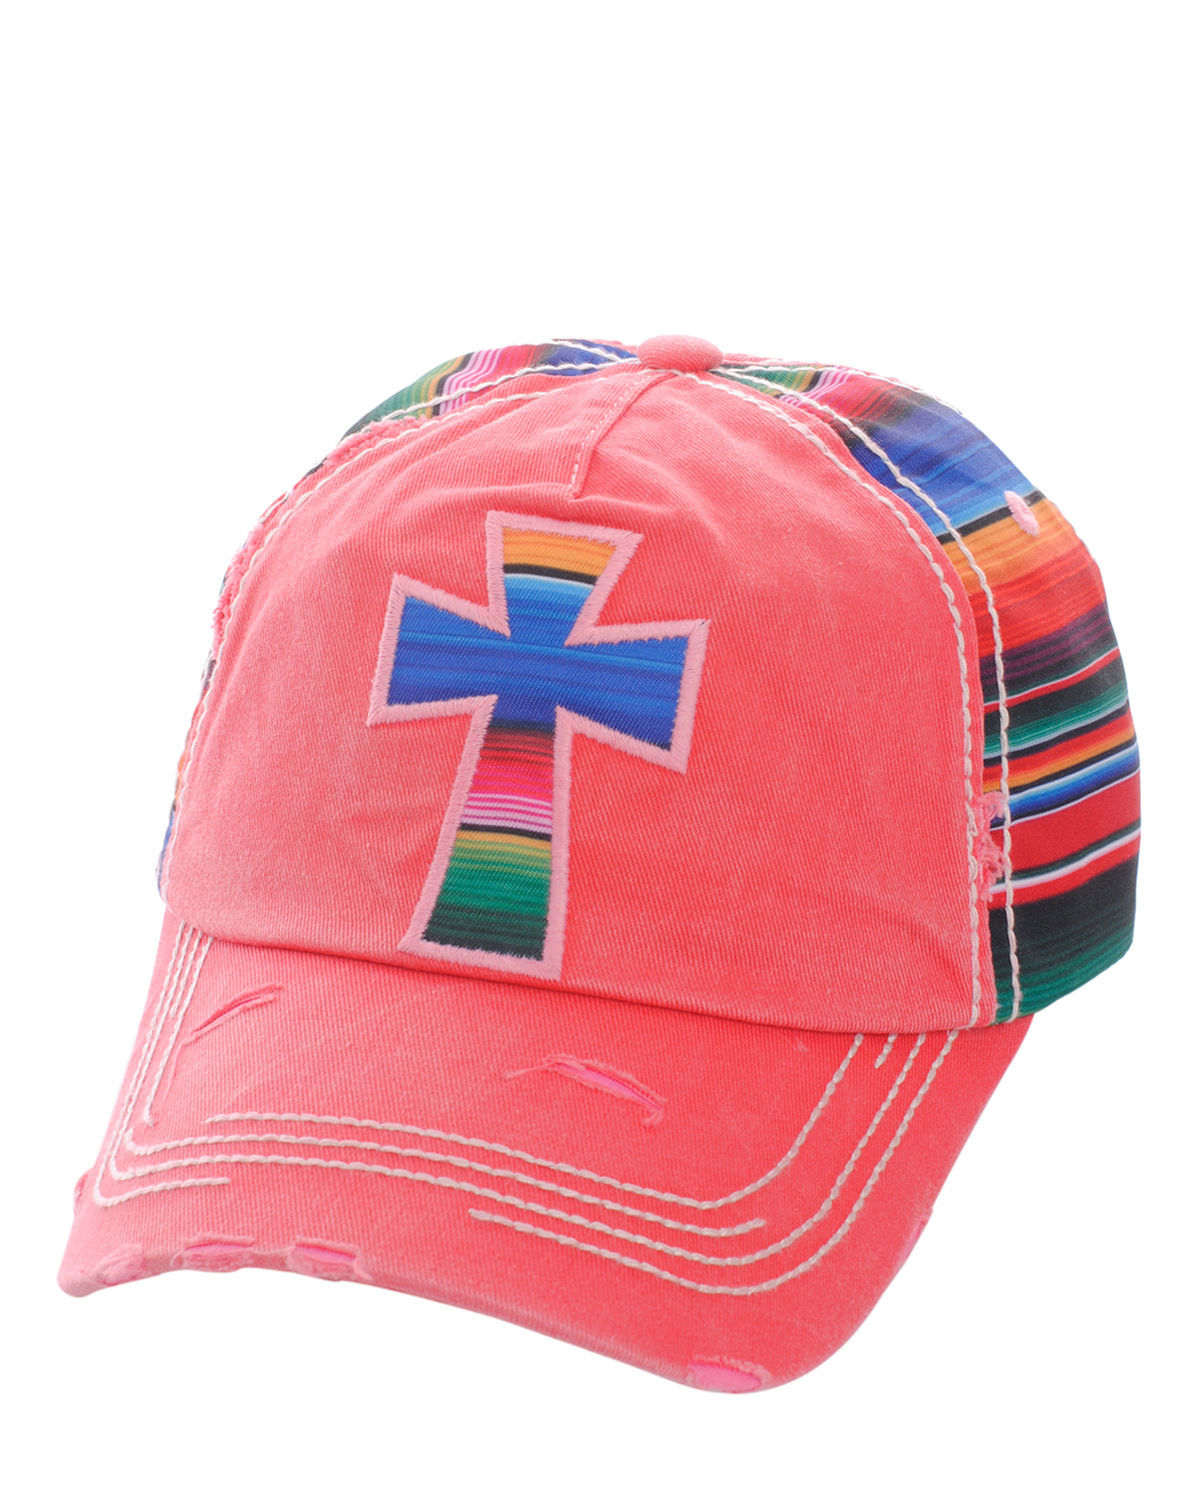 Distressed Serape Striped Cross Baseball Cap Hat Adjustable Fuchsia Hot Pink